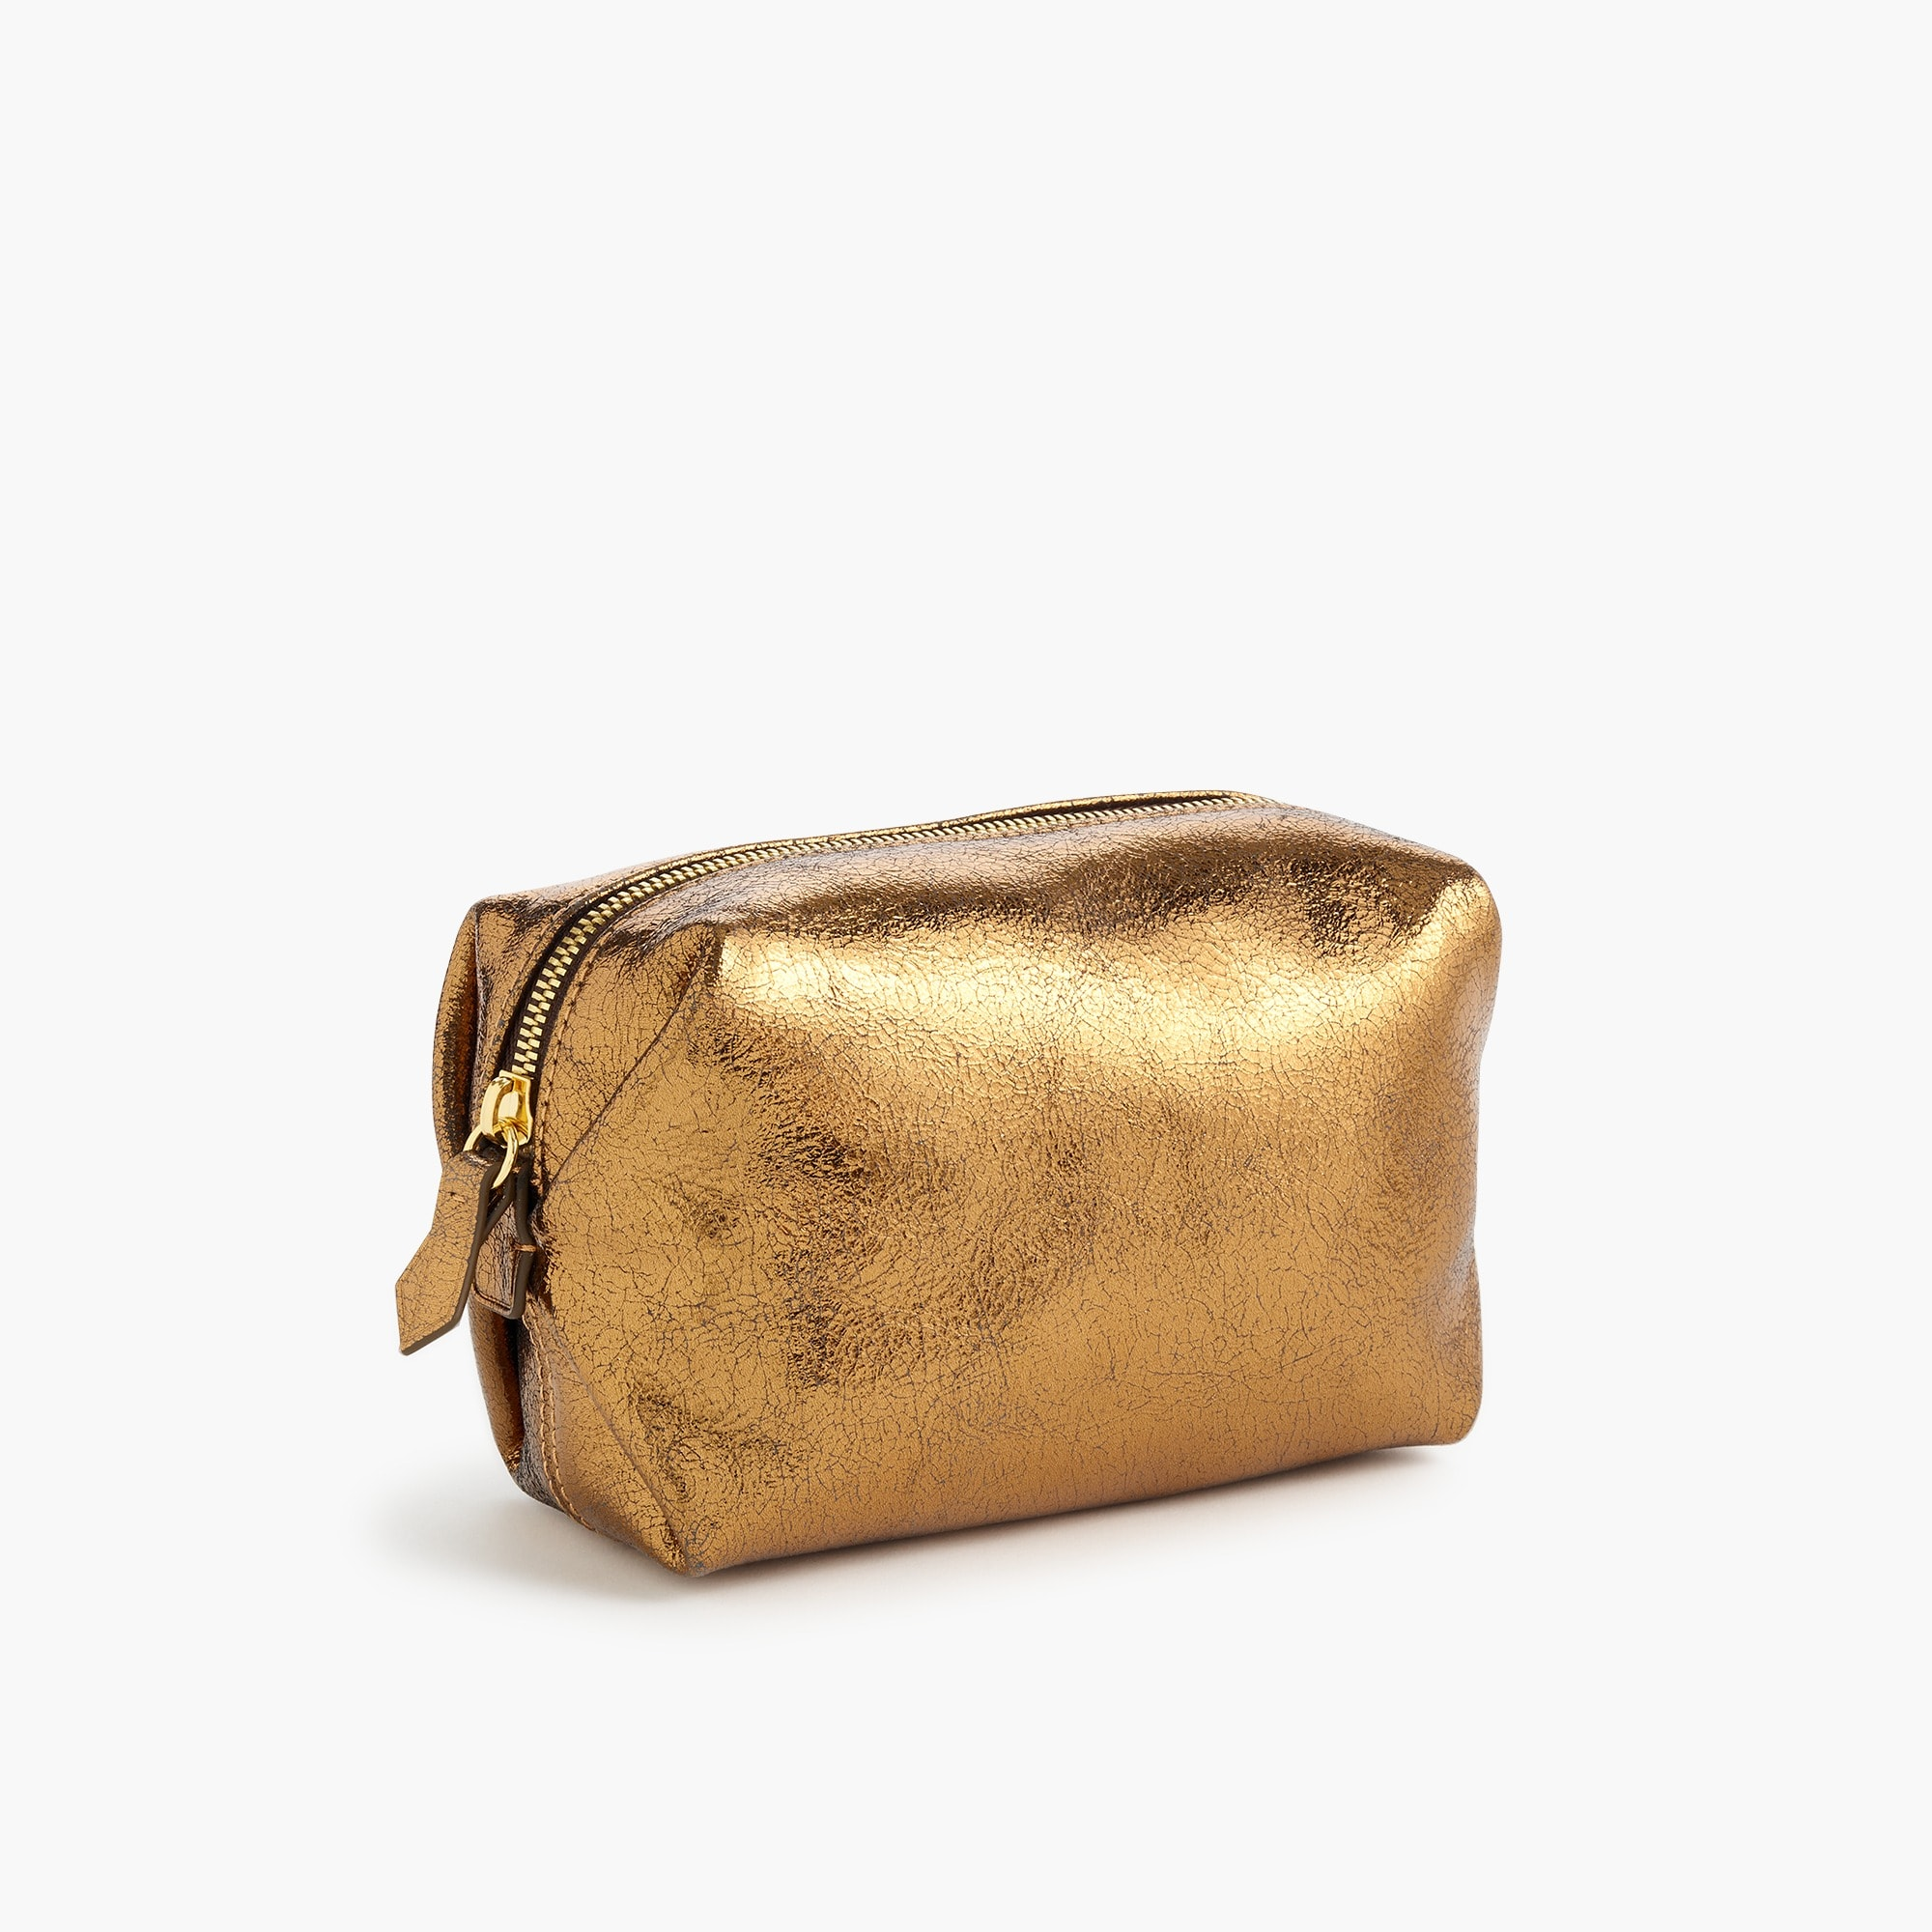 womens Harper mini dopp kit in Italian leather